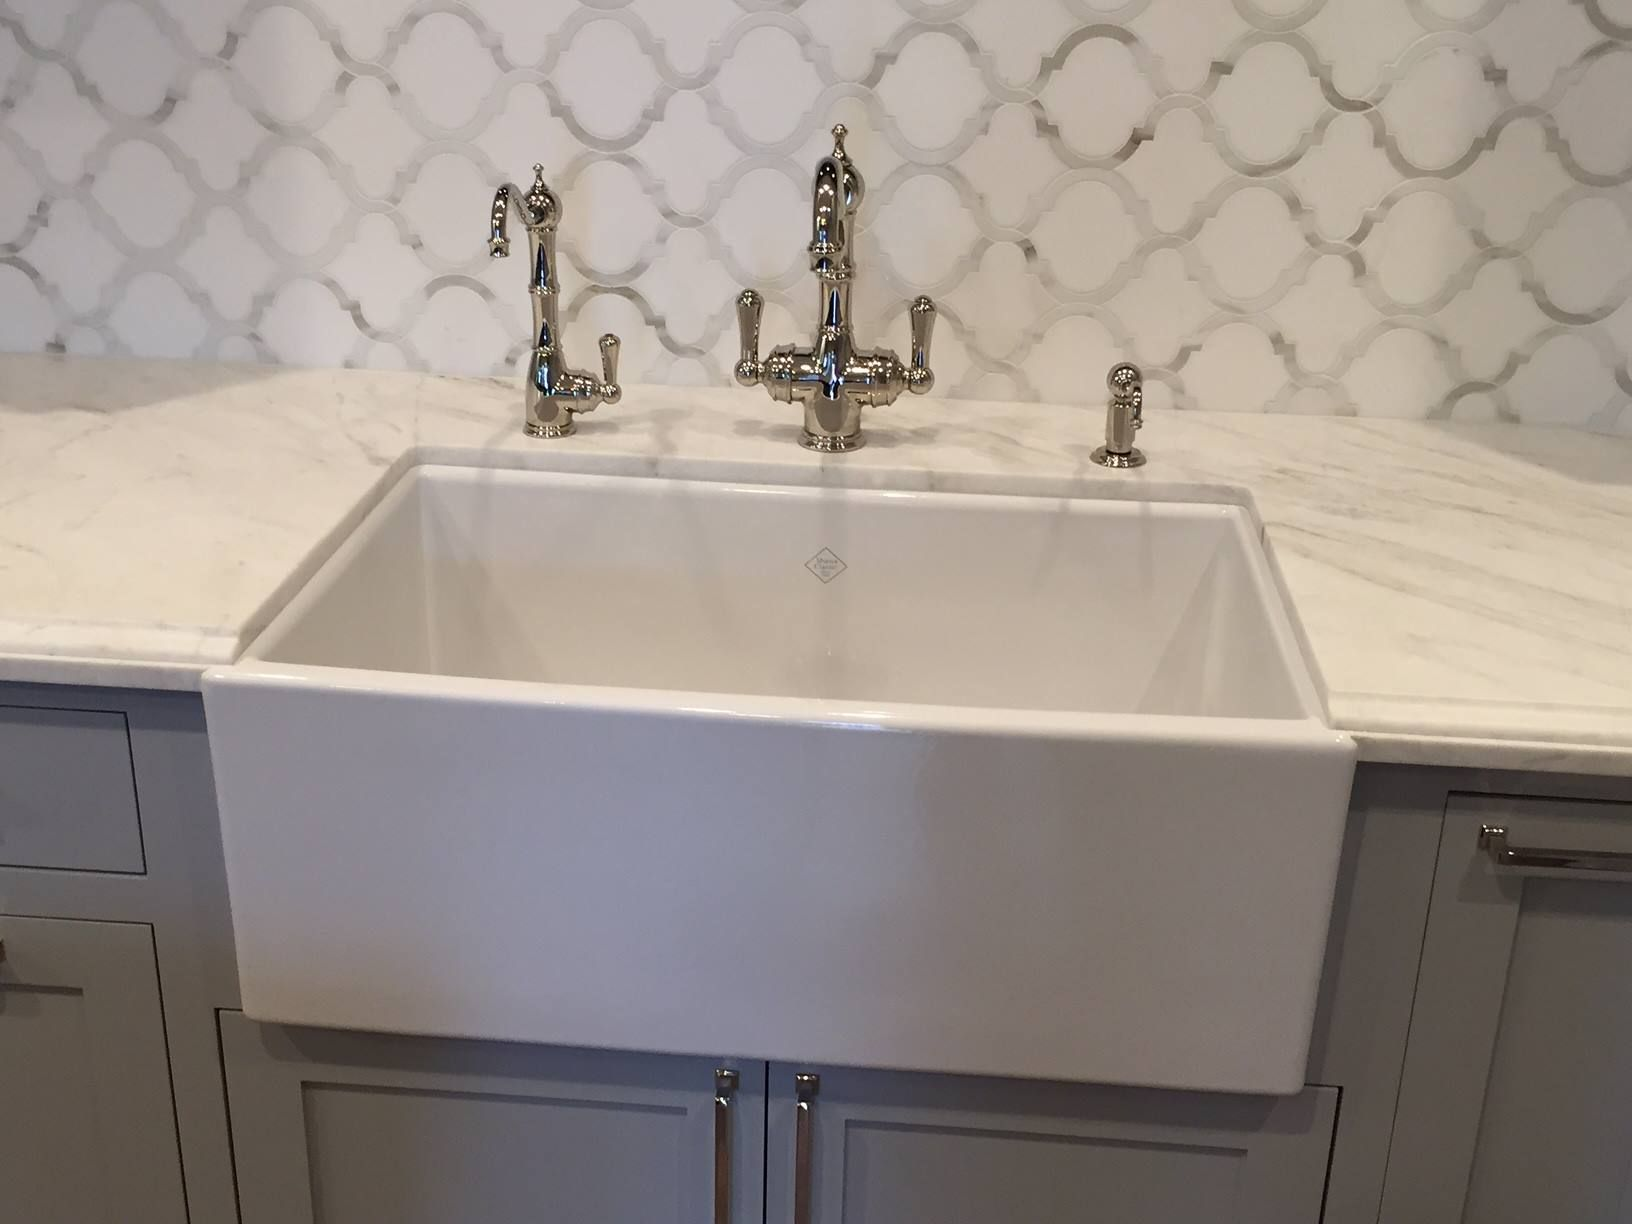 a rohl water appliance featuring a shaws farmhouse fireclay 2ea8e0f0e463c1b3bee2619ad7b9d3cc jpg